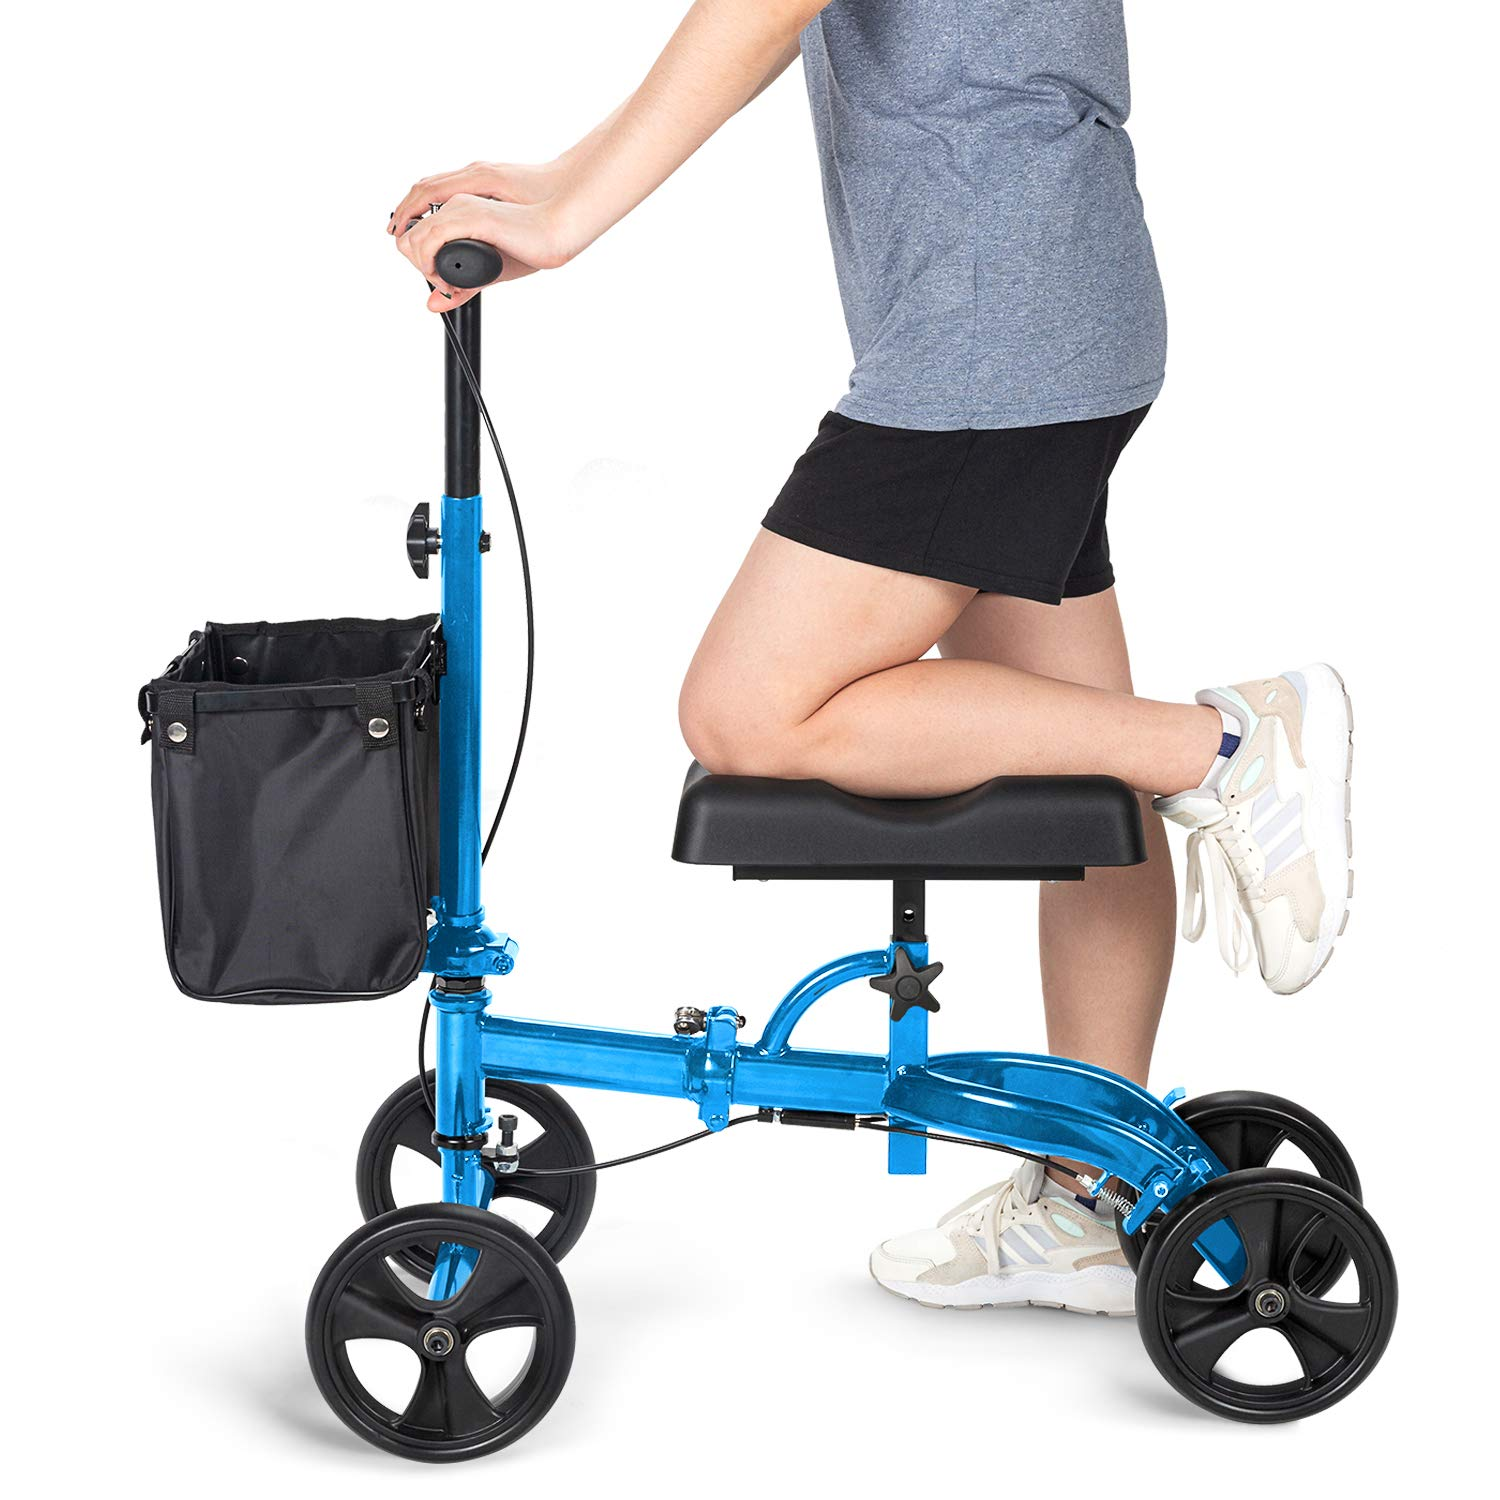 OasisSpace Steerable Knee Walker, Economy Knee Scooter for Foot Injuries Ankles Surgery (Blue) by OasisSpace